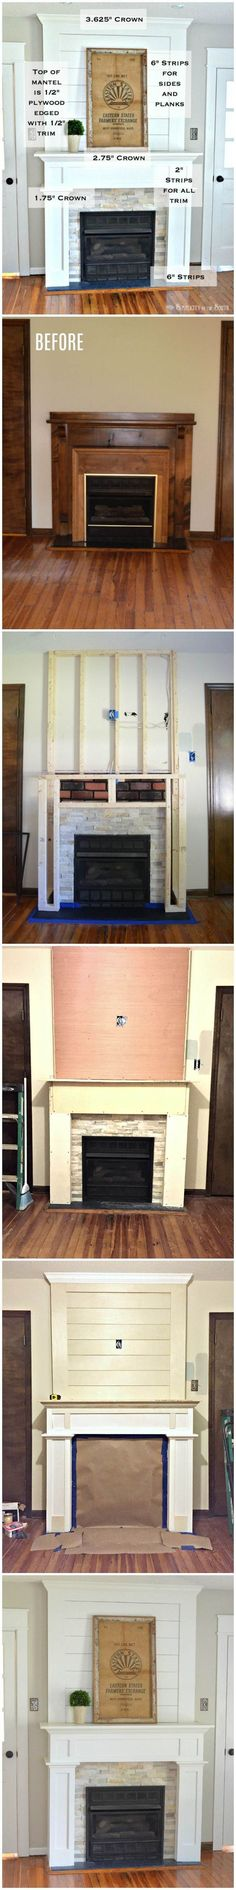 Such an easy way to do a DIY farmhouse style fireplace makeover on a budget with shiplap above the mantle and using stone tile and ply wood